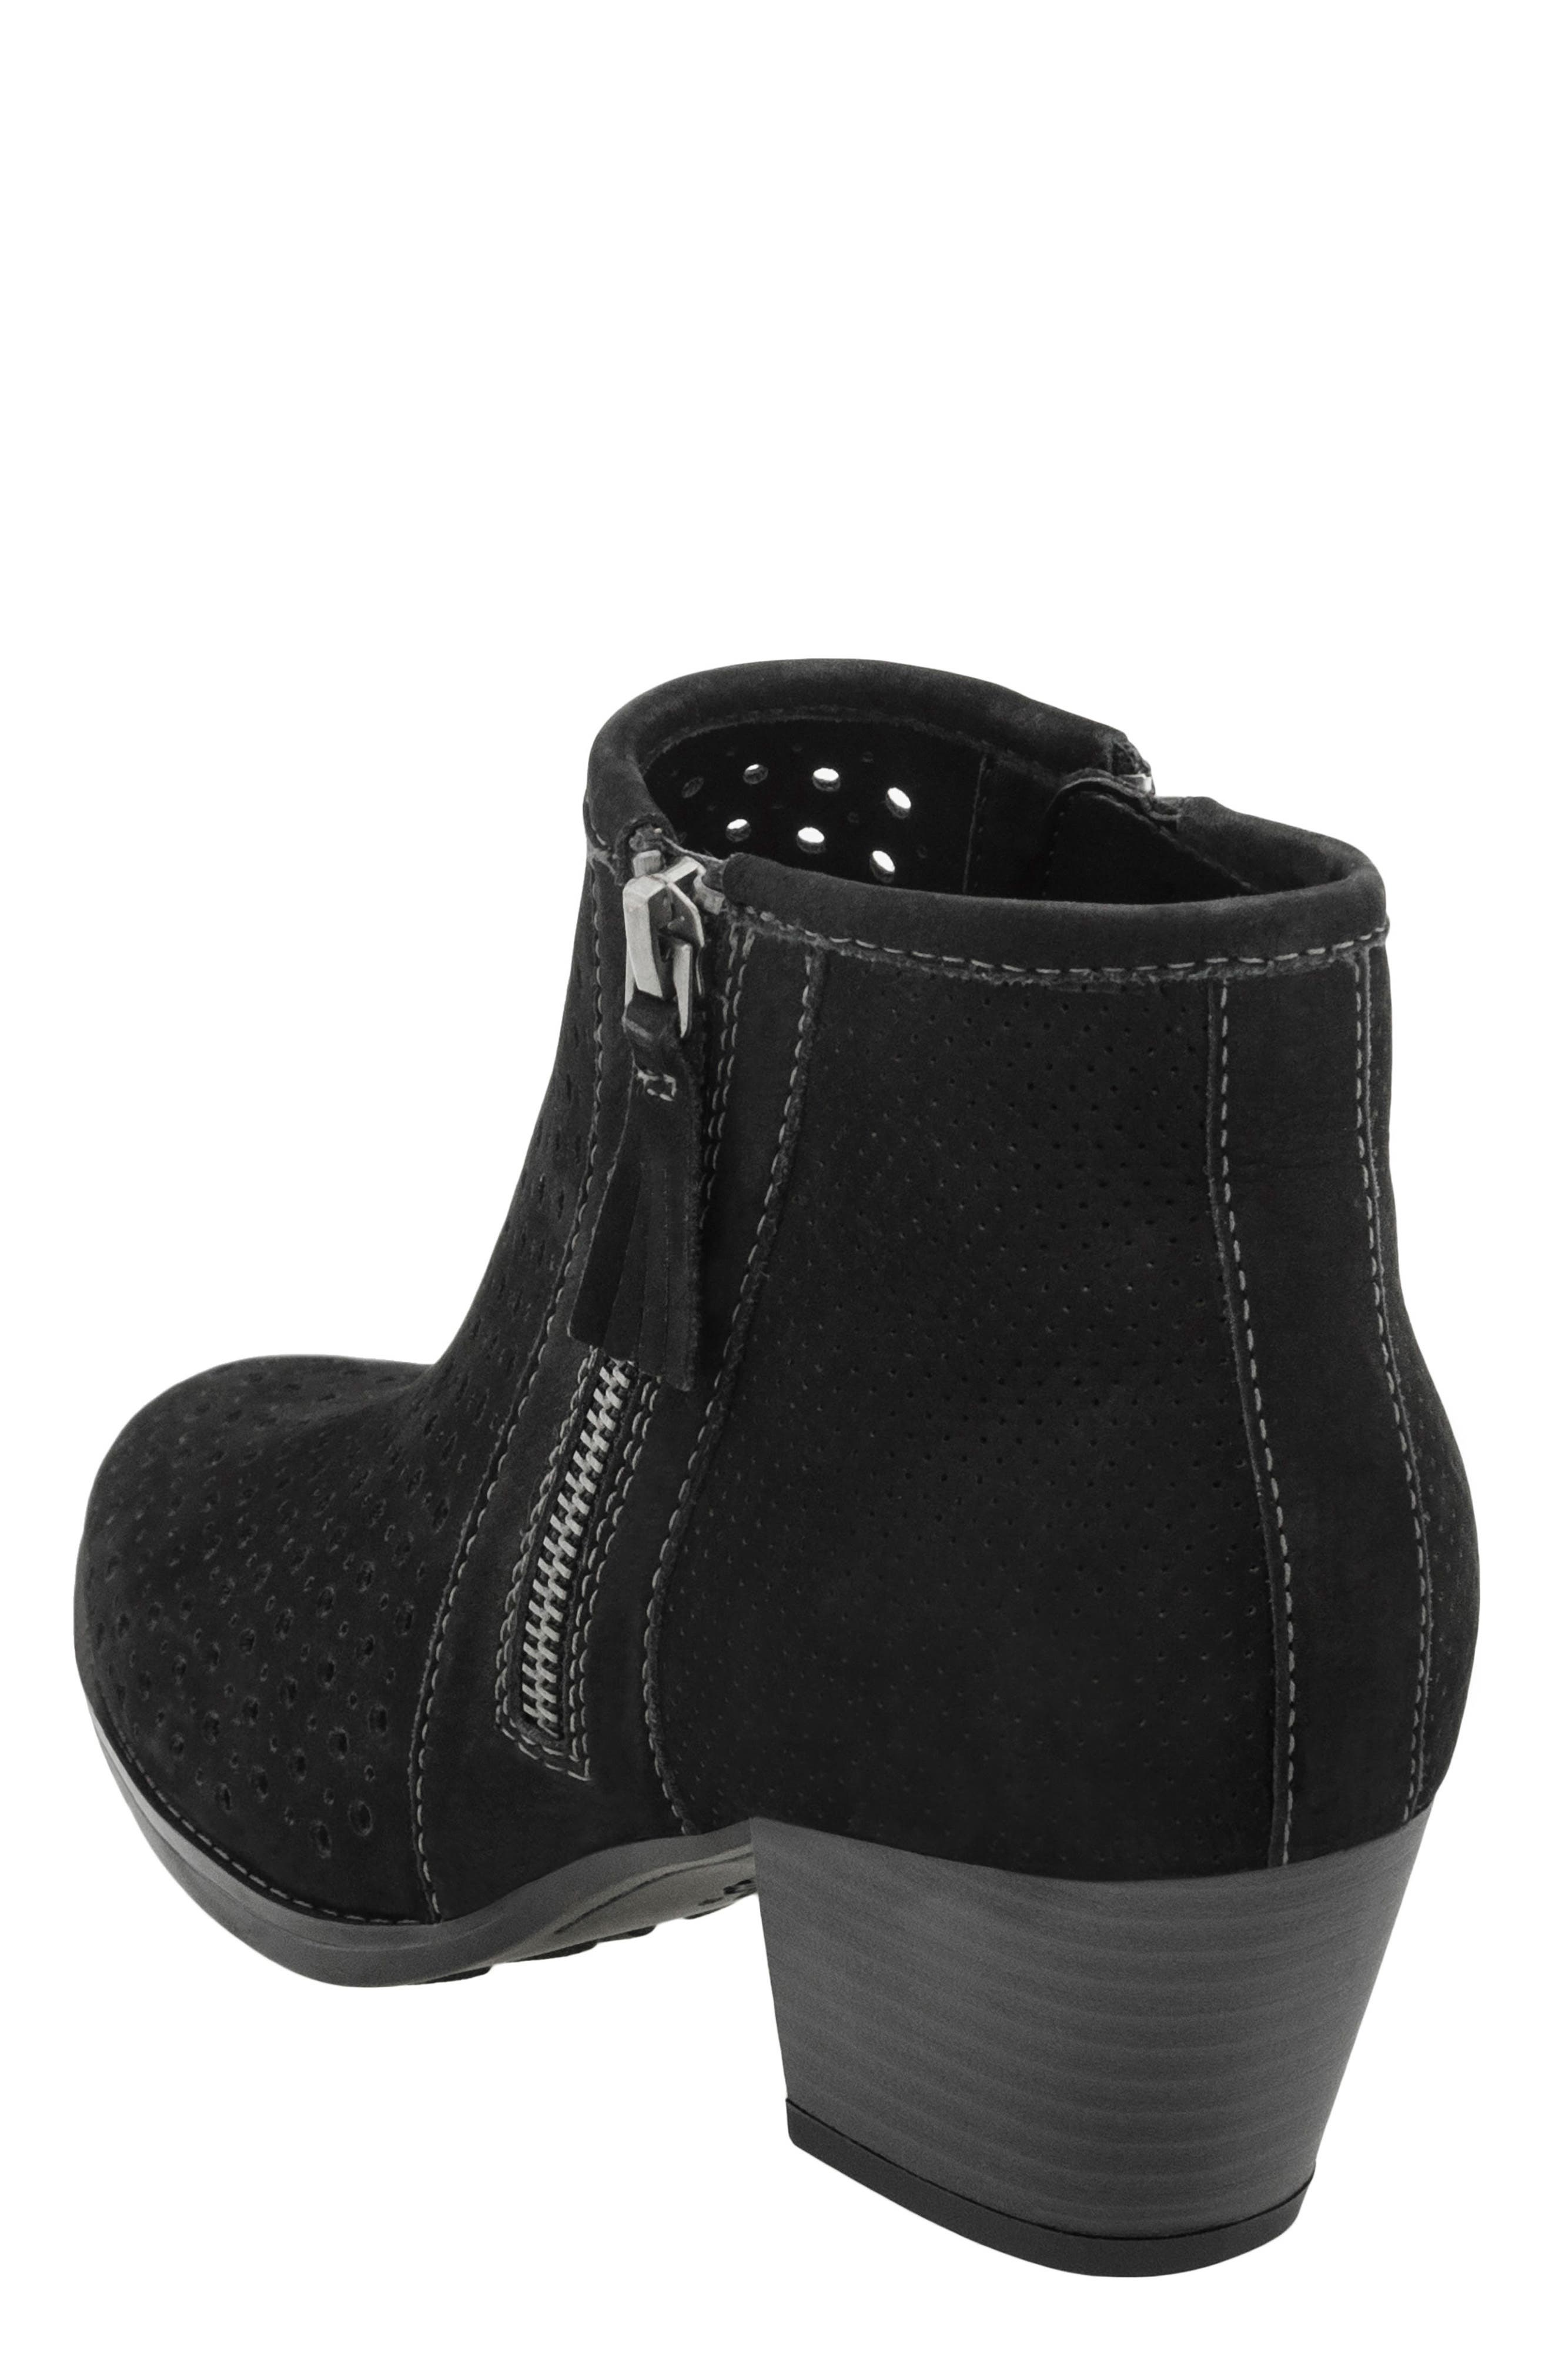 Pineberry Bootie,                             Alternate thumbnail 4, color,